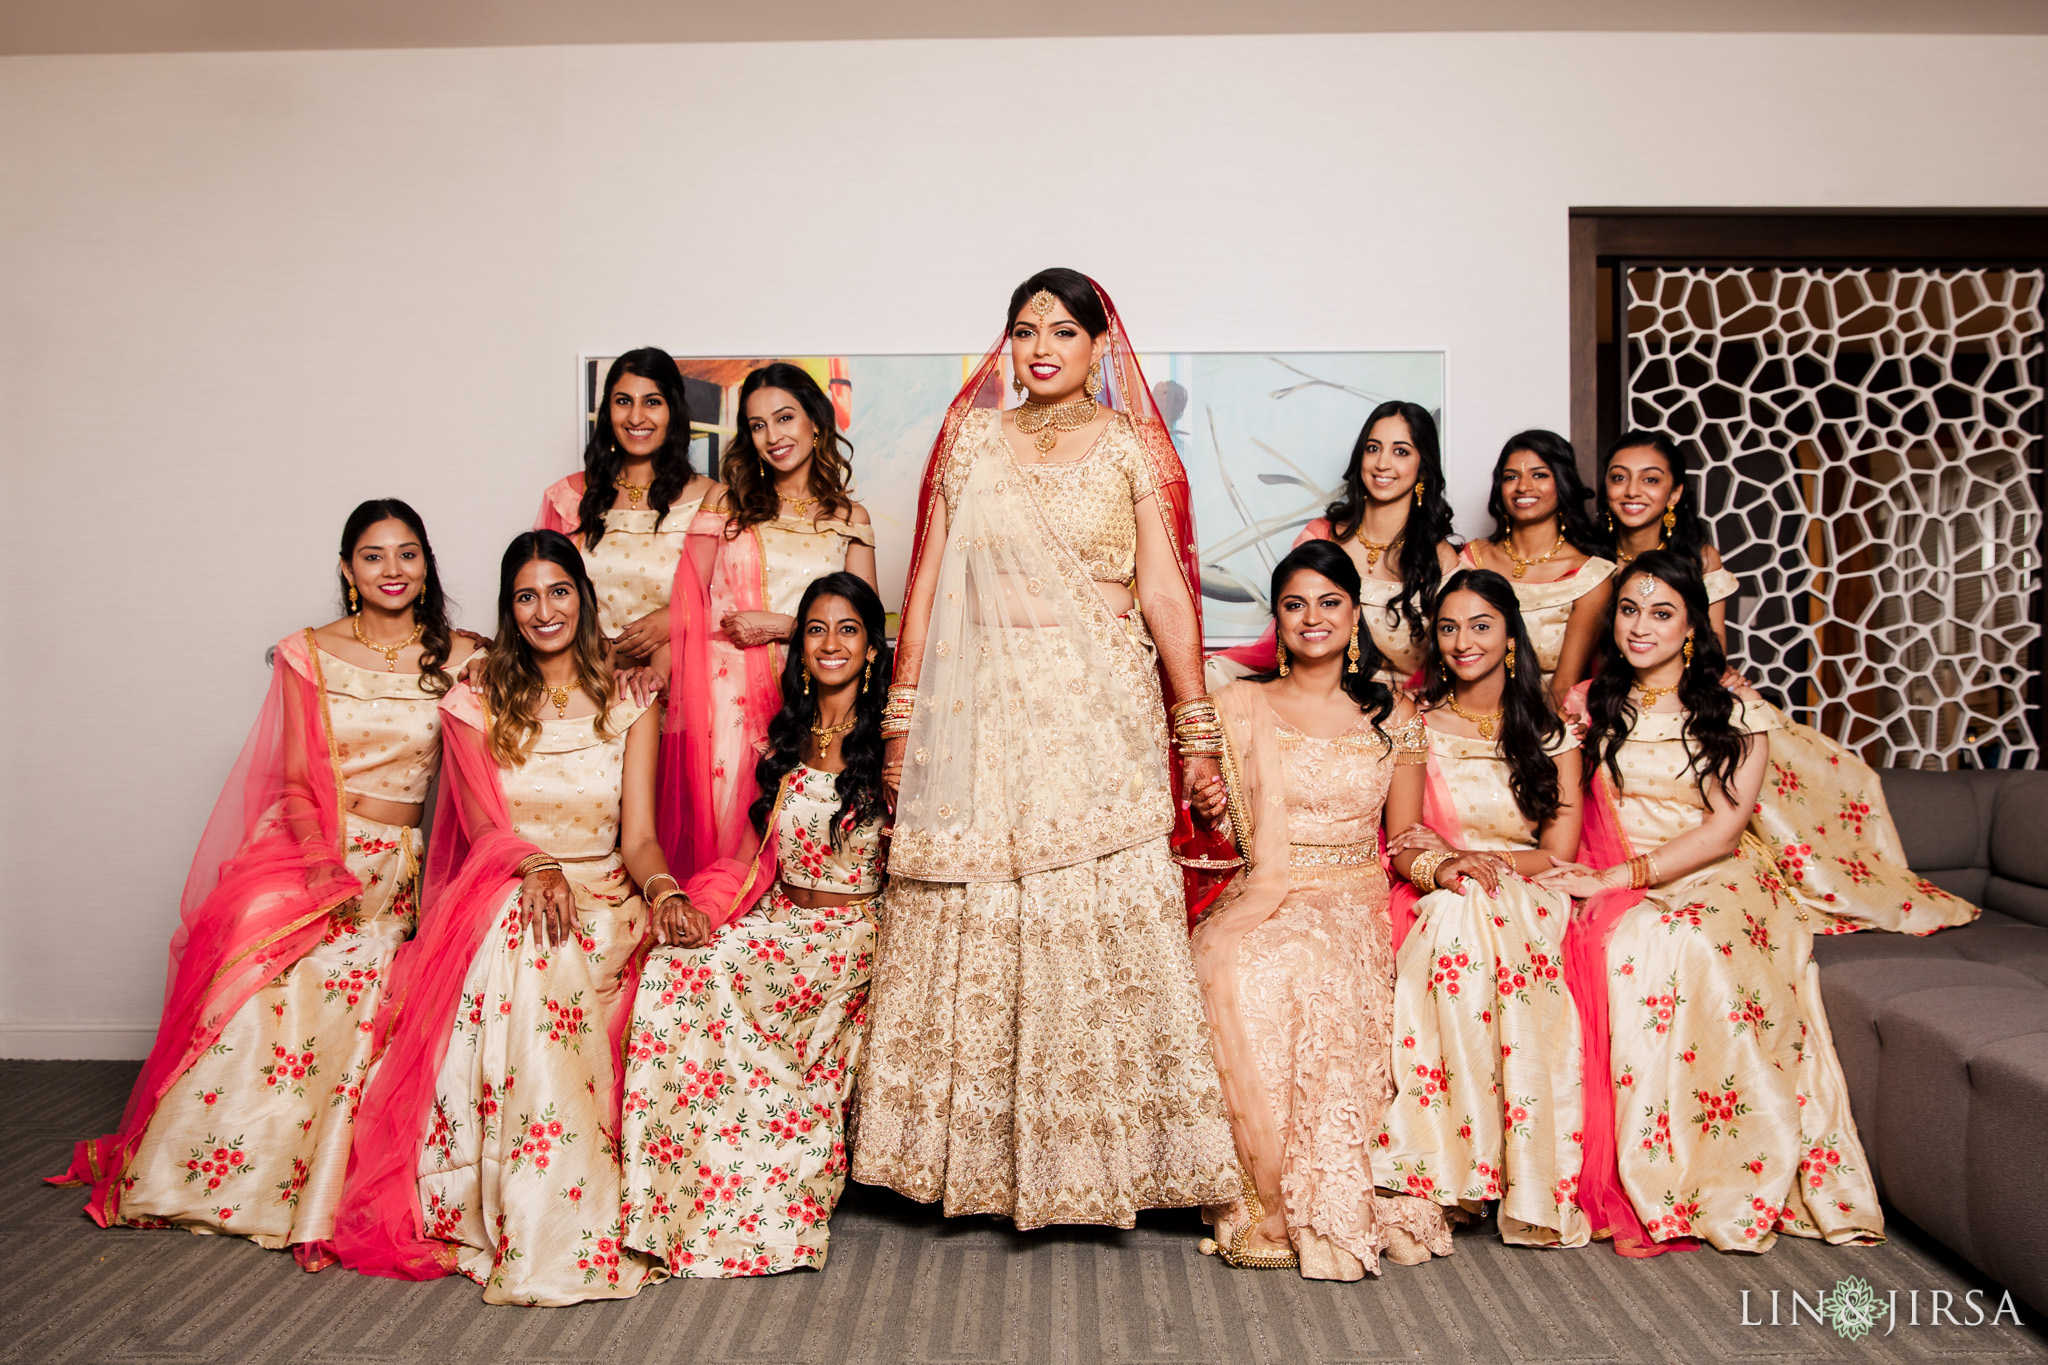 005 Long Beach Performing Arts Center Indian Bridal Party Wedding Photography